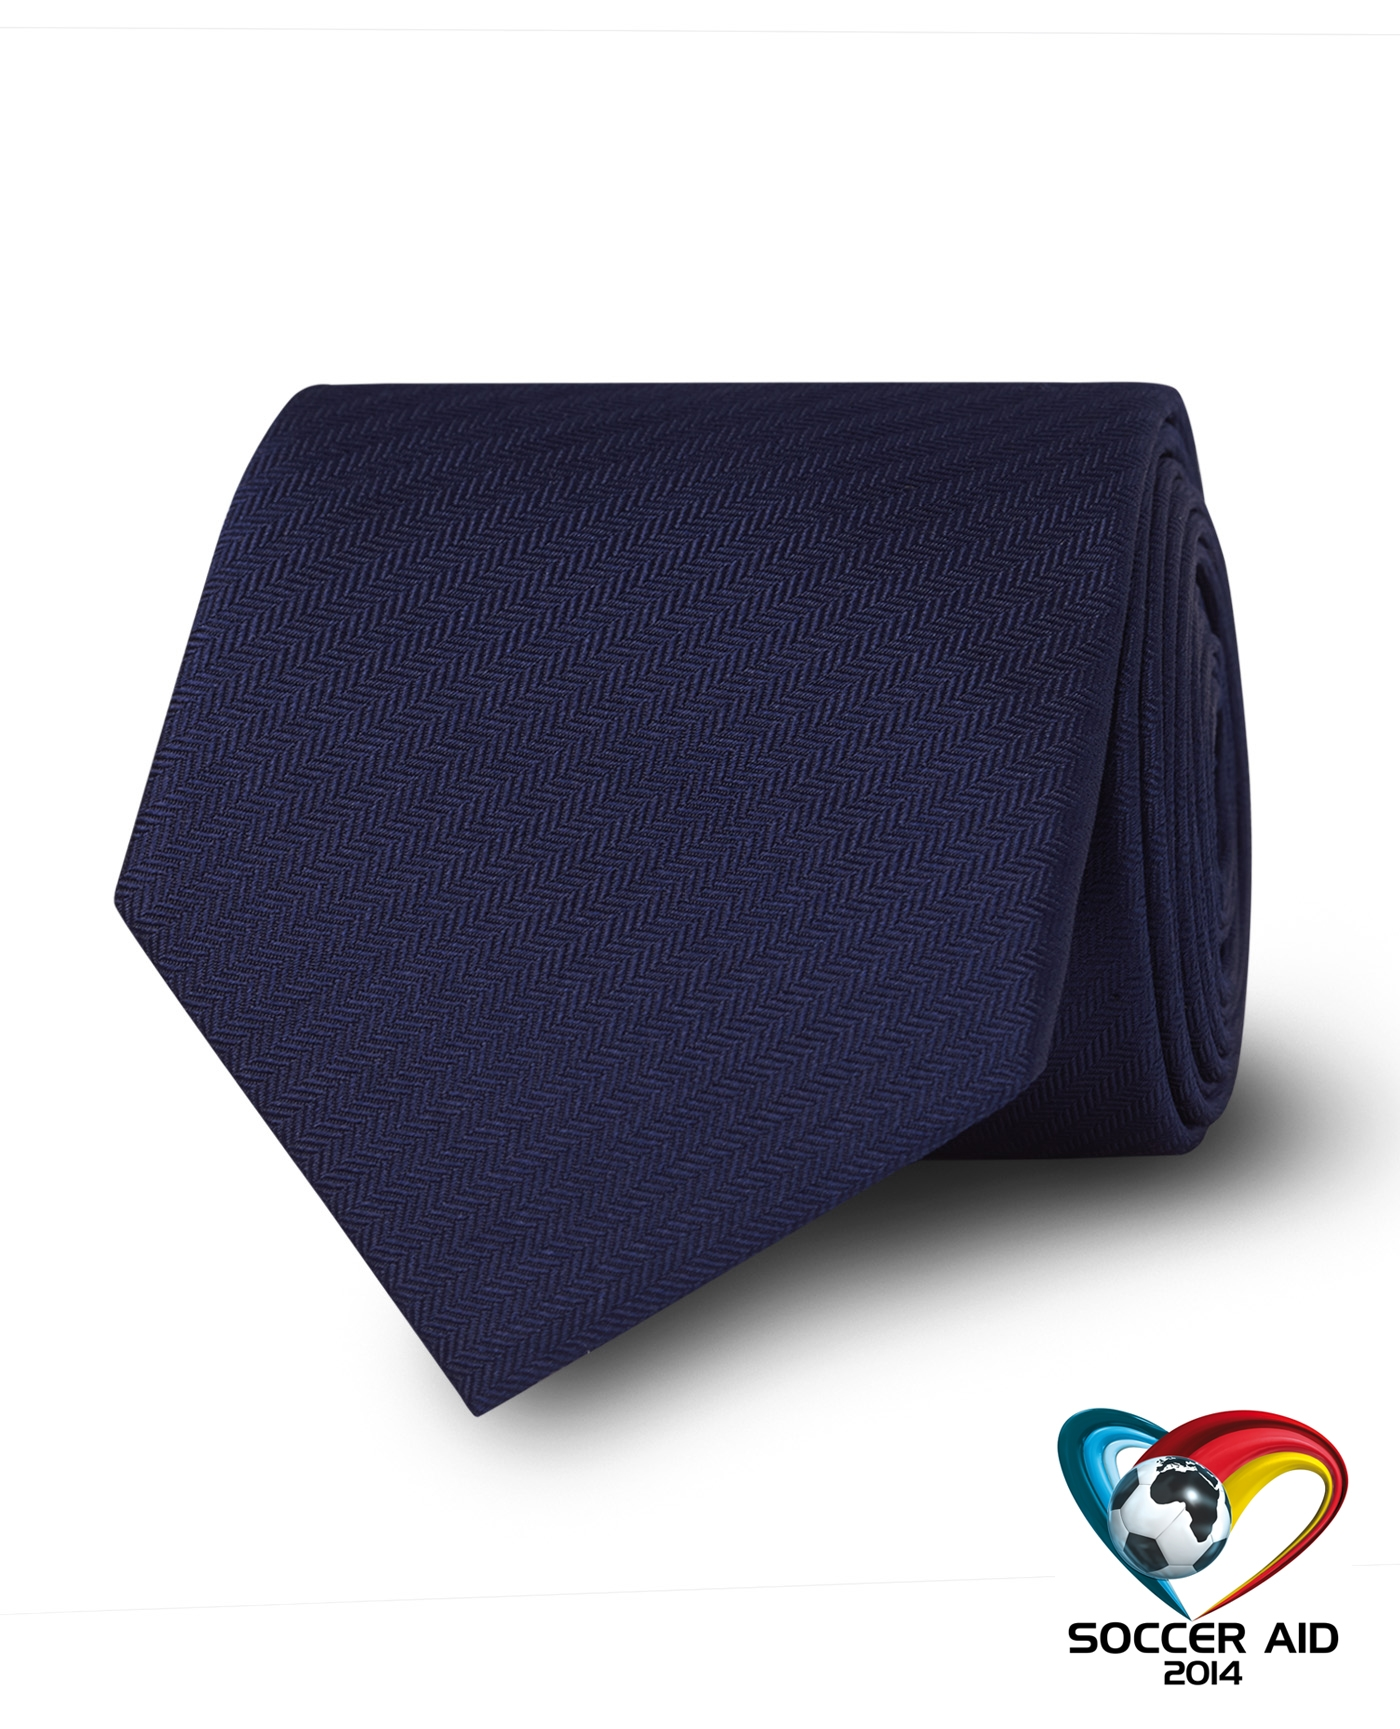 T.M.Lewin launches EXCLUSIVE Soccer Aid Tie in aid of UNICEF | Ultimate Wedding Magazine 2